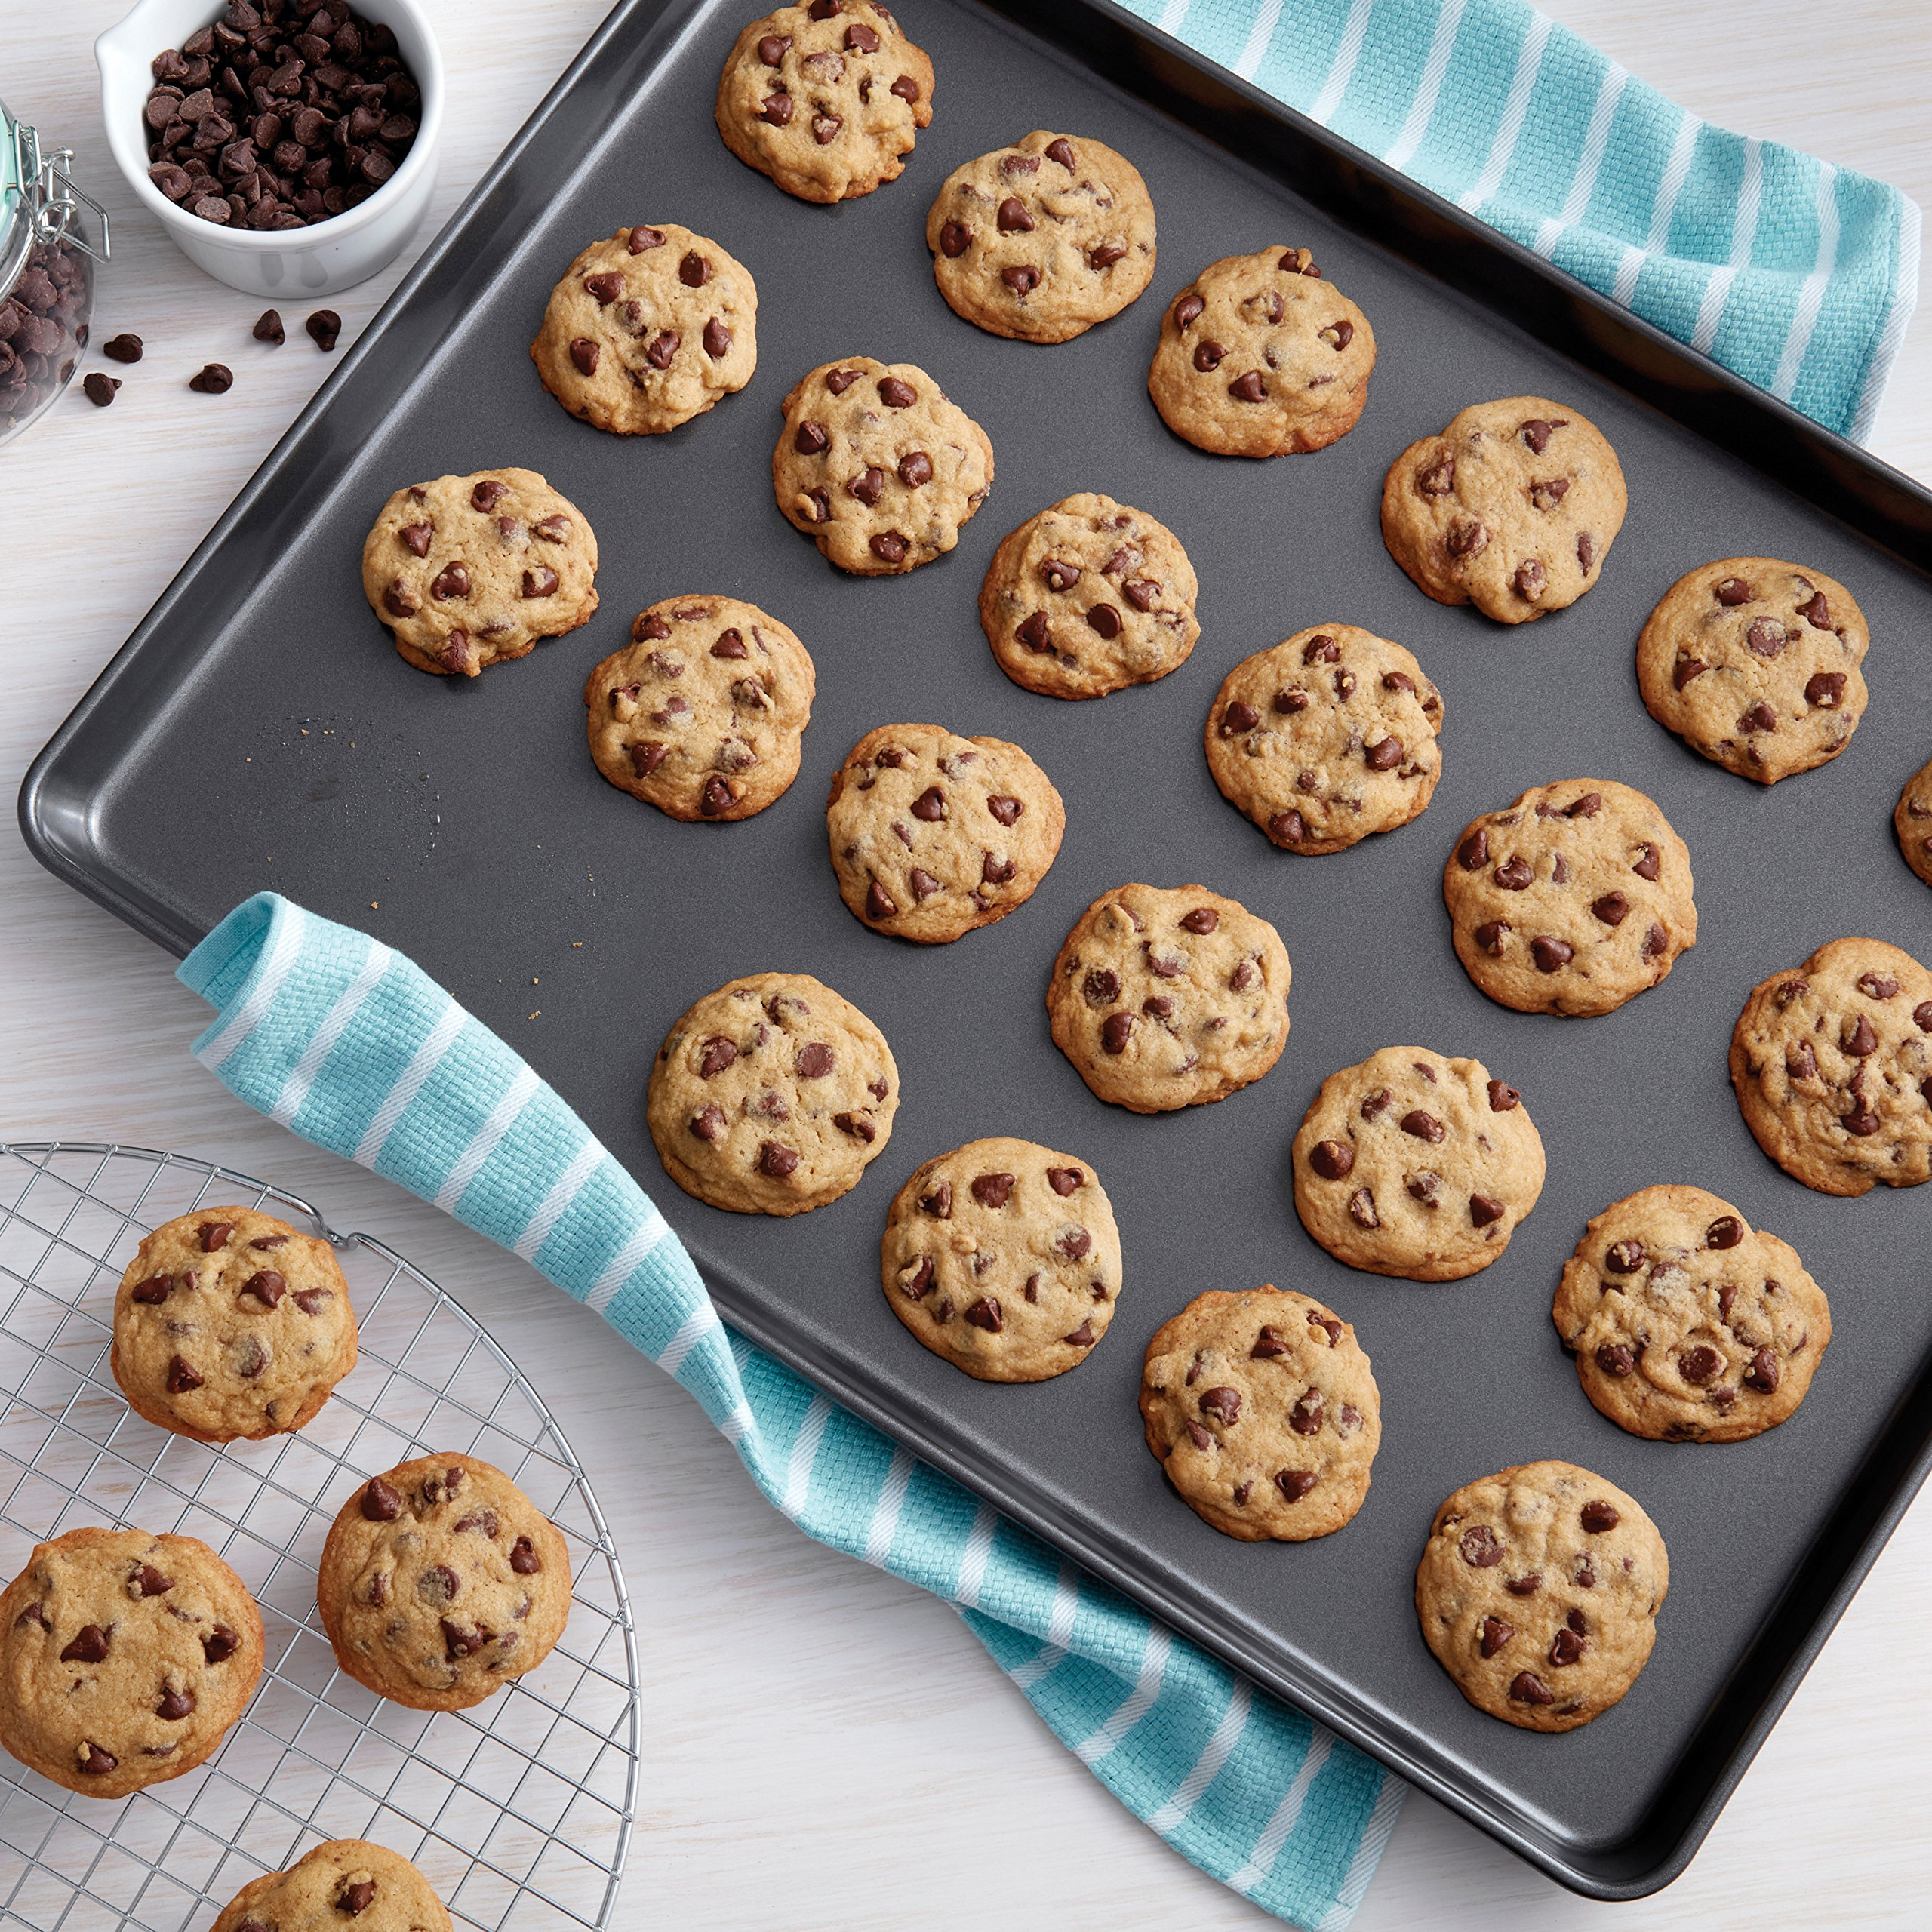 Wilton 15 x 21-Inch 2105-0109 Perfect Results Non-Stick Mega Large Cookie Pan by Wilton (Image #4)